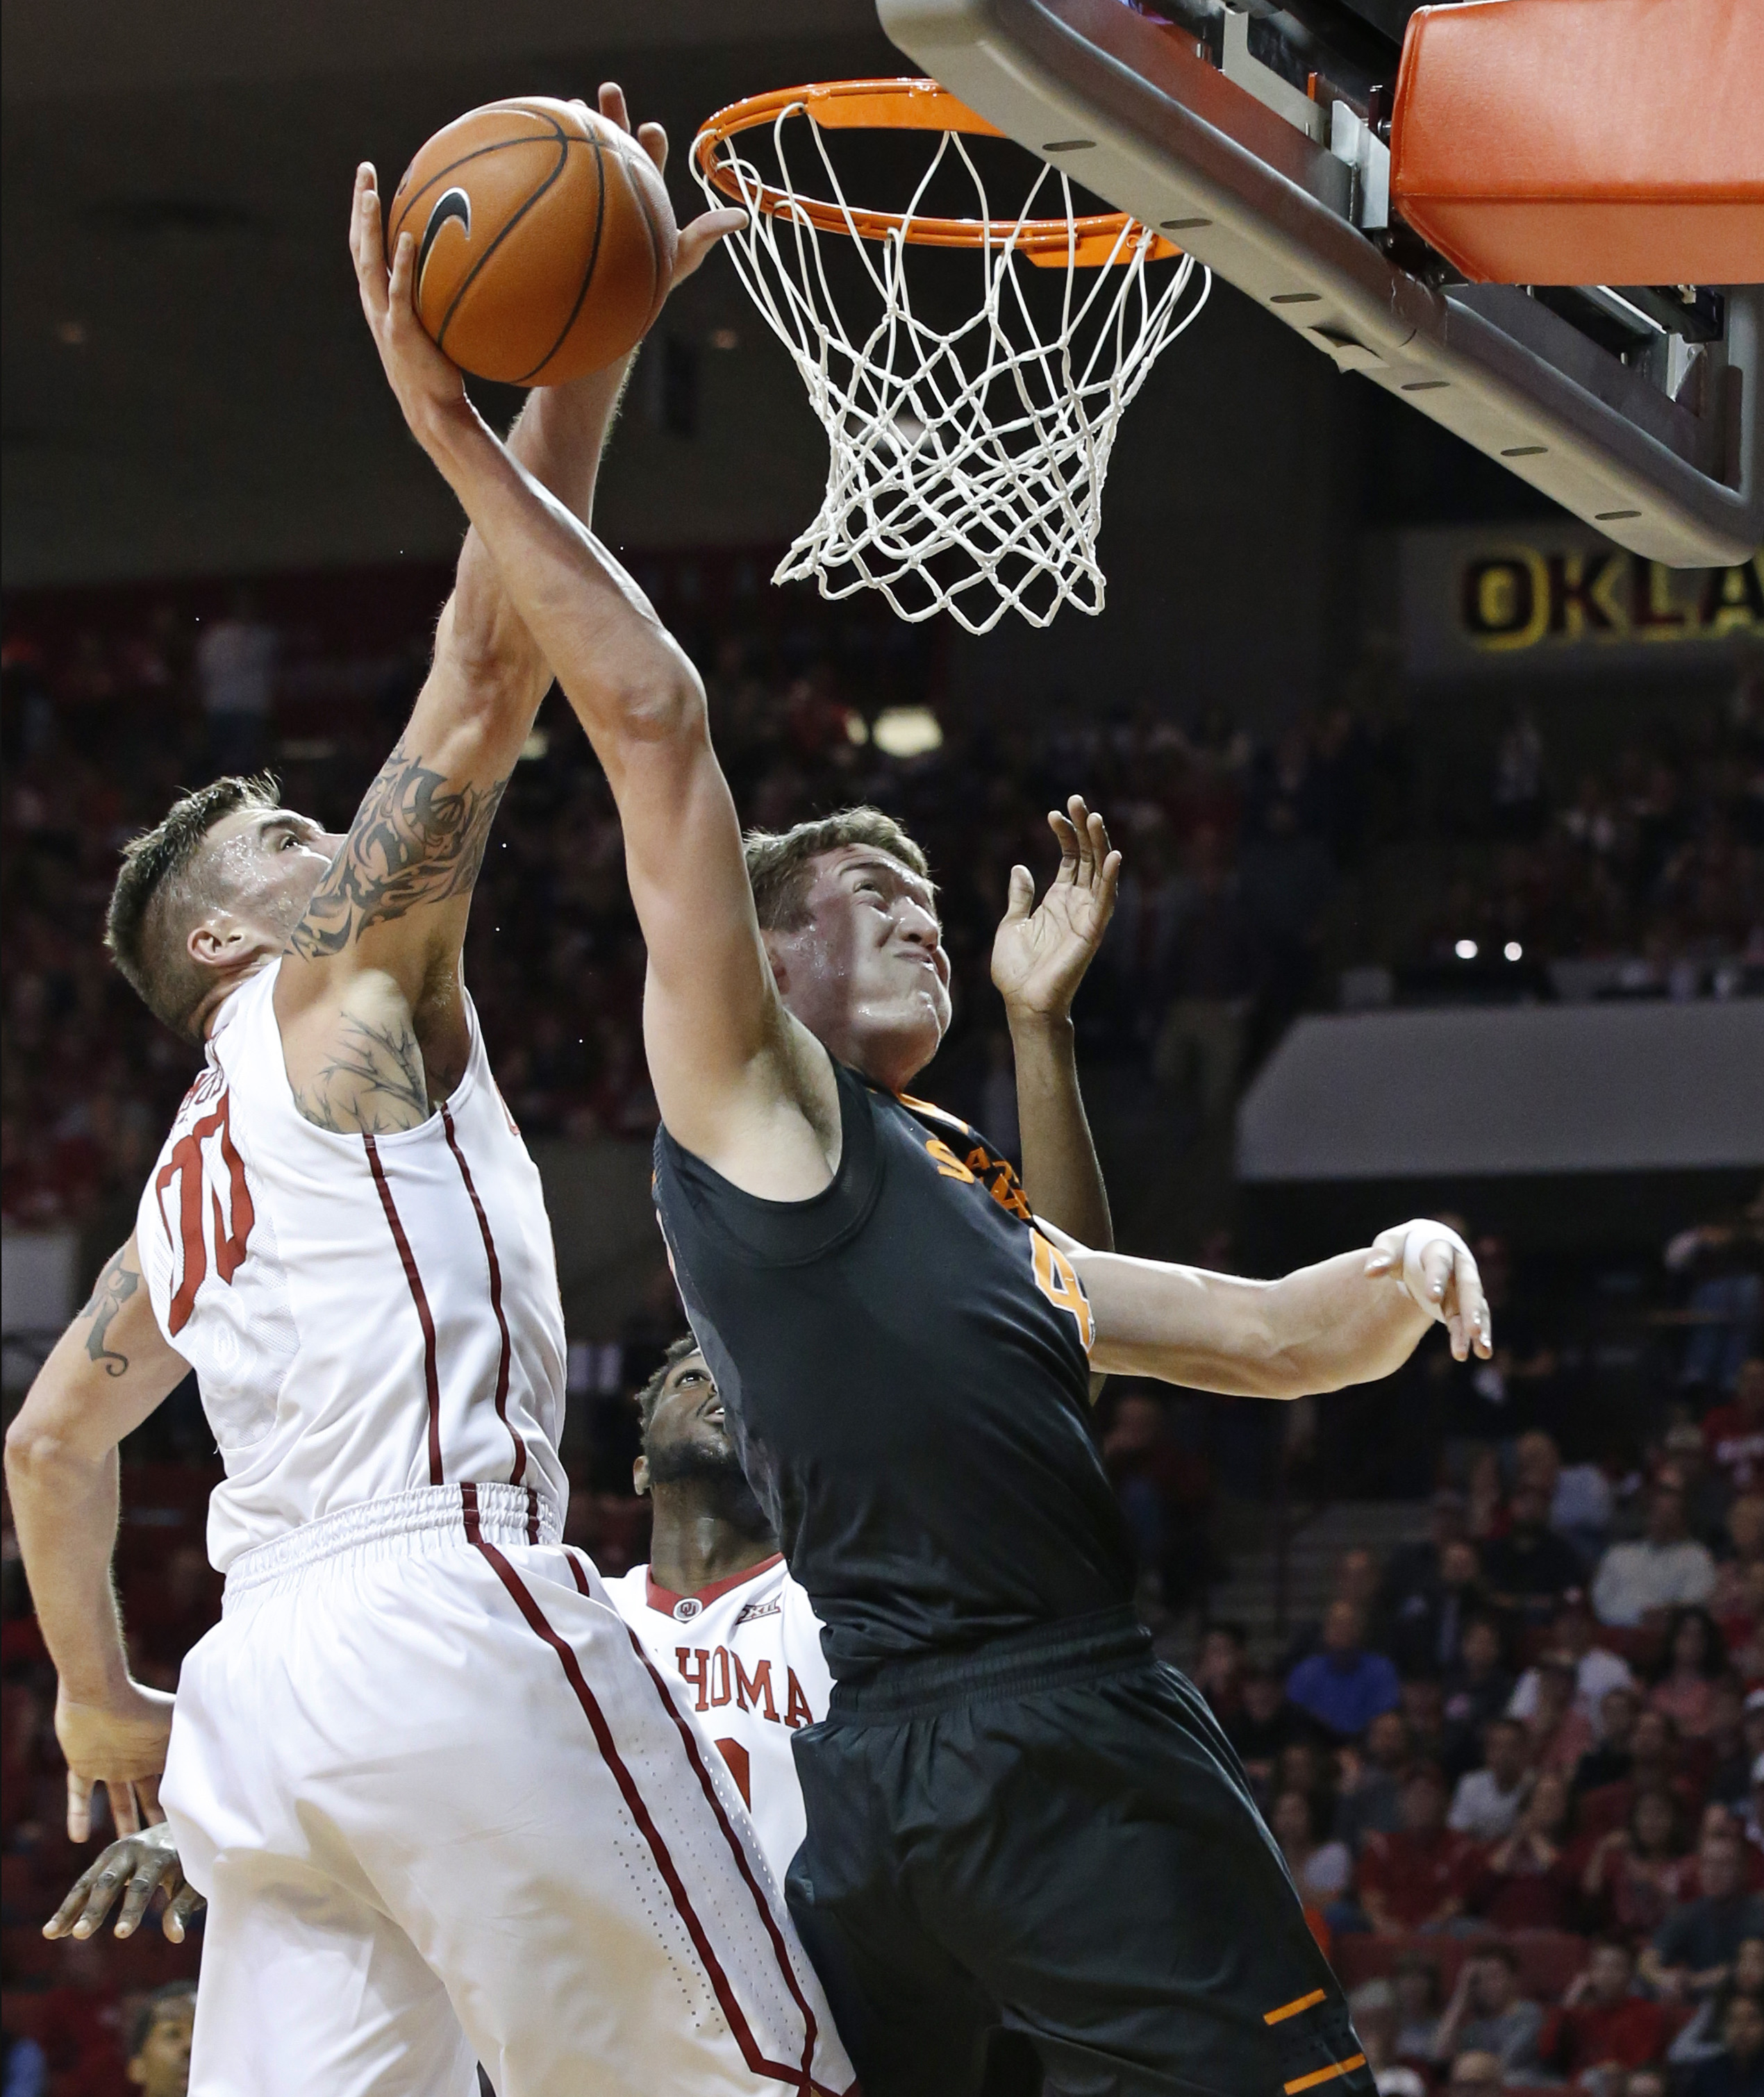 Oklahoma forward Ryan Spangler (00) blocks a shot by Oklahoma State forward Mitchell Solomon, right, during the first half of an NCAA college basketball game in Norman, Okla., Wednesday, Feb. 24, 2016. (AP Photo/Sue Ogrocki)